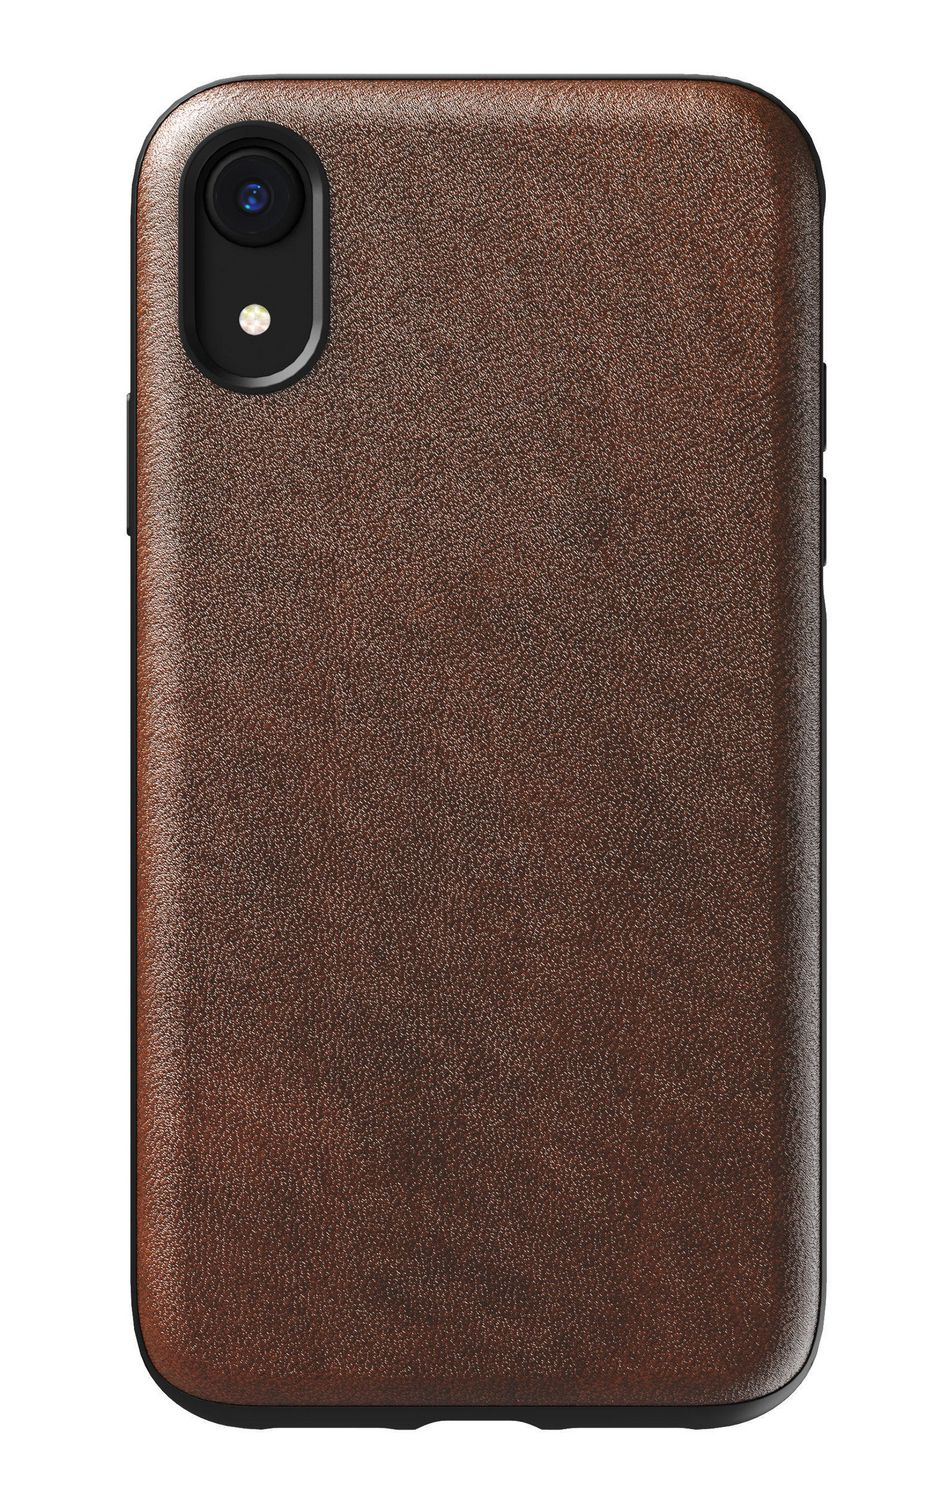 huge discount 86cda c6cb8 Nomad Rugged Leather Case for iPhone XR